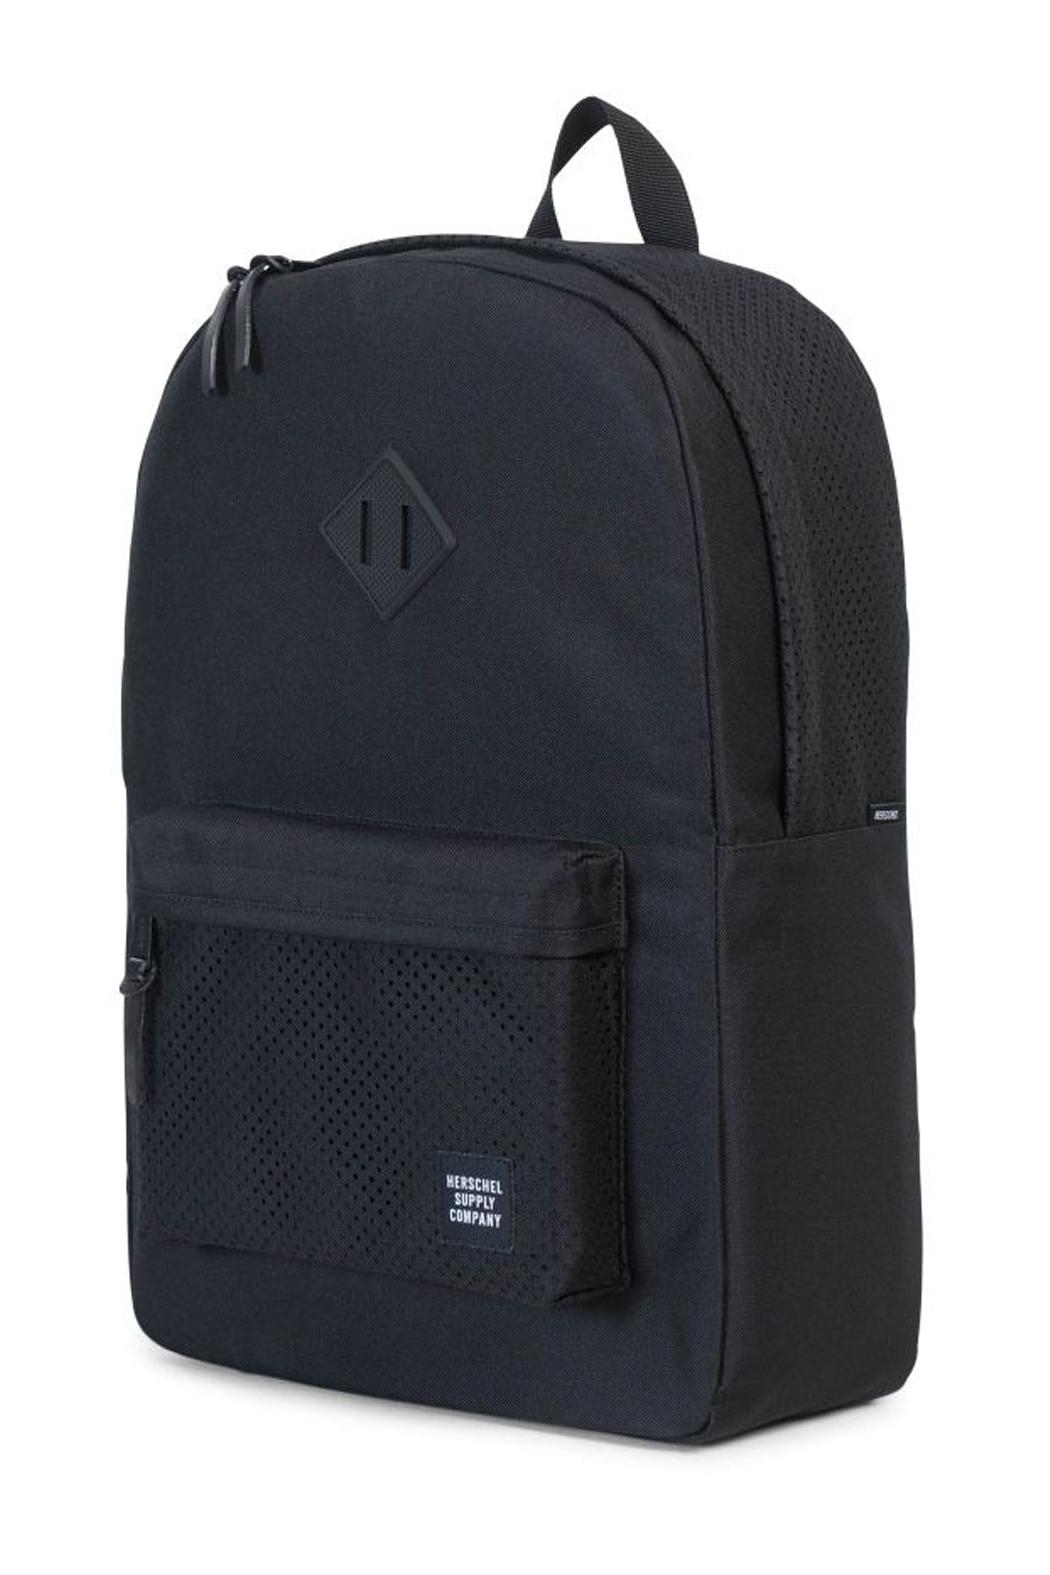 0ce1c81d2e7 Herschel Supply Co. Aspect Heritage Backpack from Pennsylvania by ...